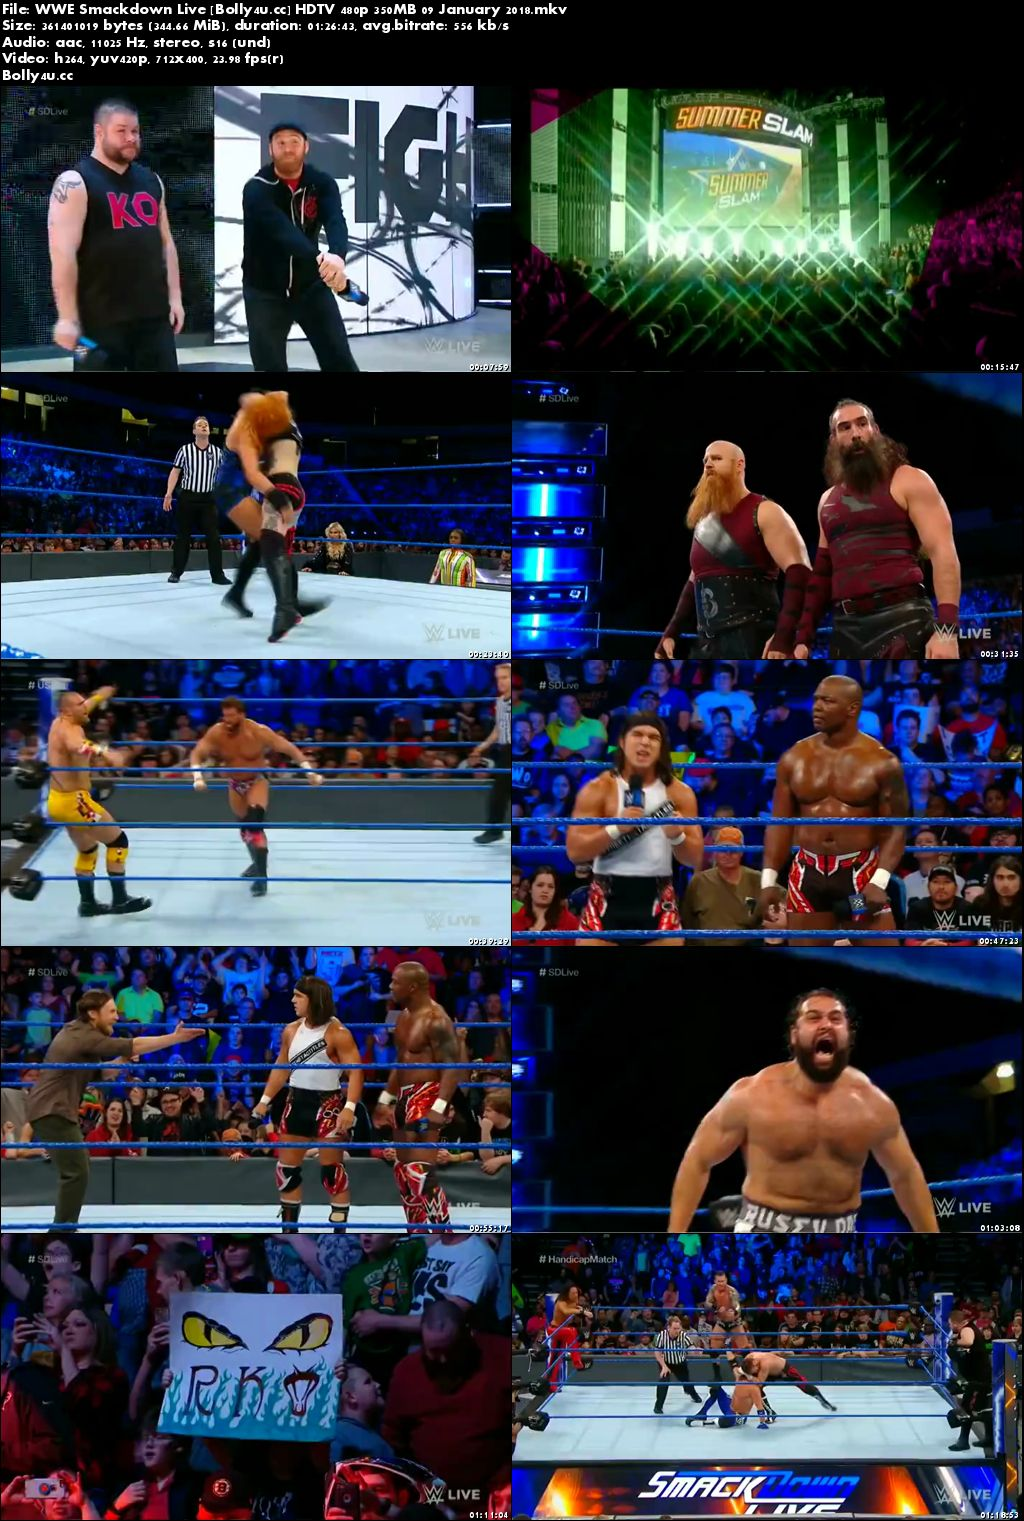 WWE Smackdown Live HDTV 480p 350MB 09 January 2018 Download